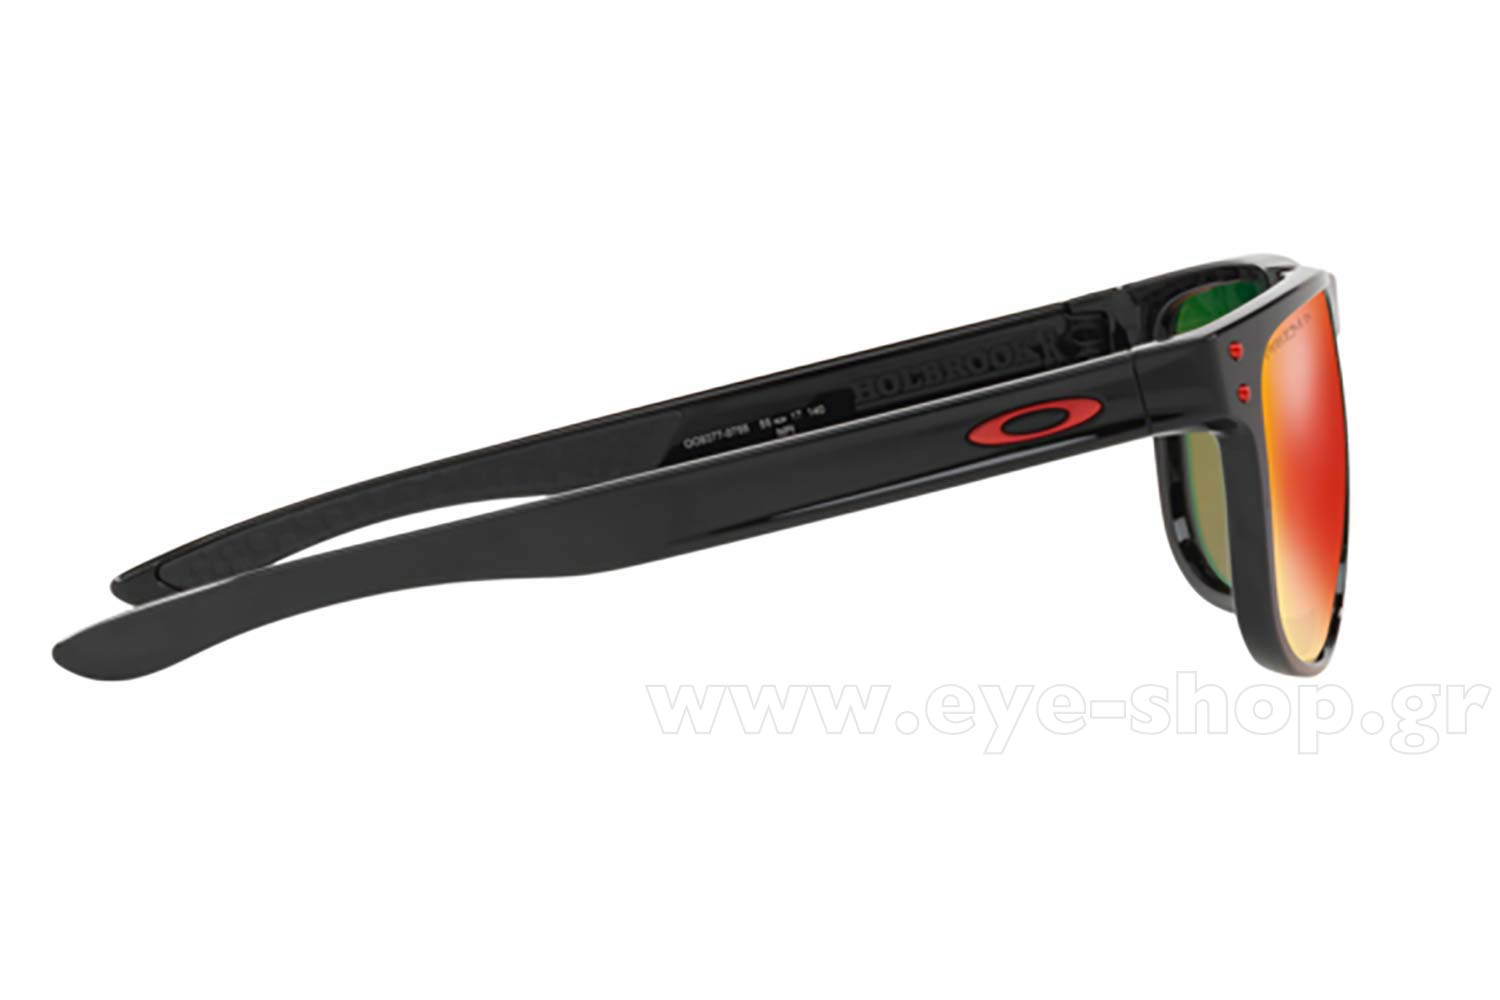 59129c117c Oakley model HOLBROOK R 9377 color 07 POLISHED BLACK prizm ruby polarized